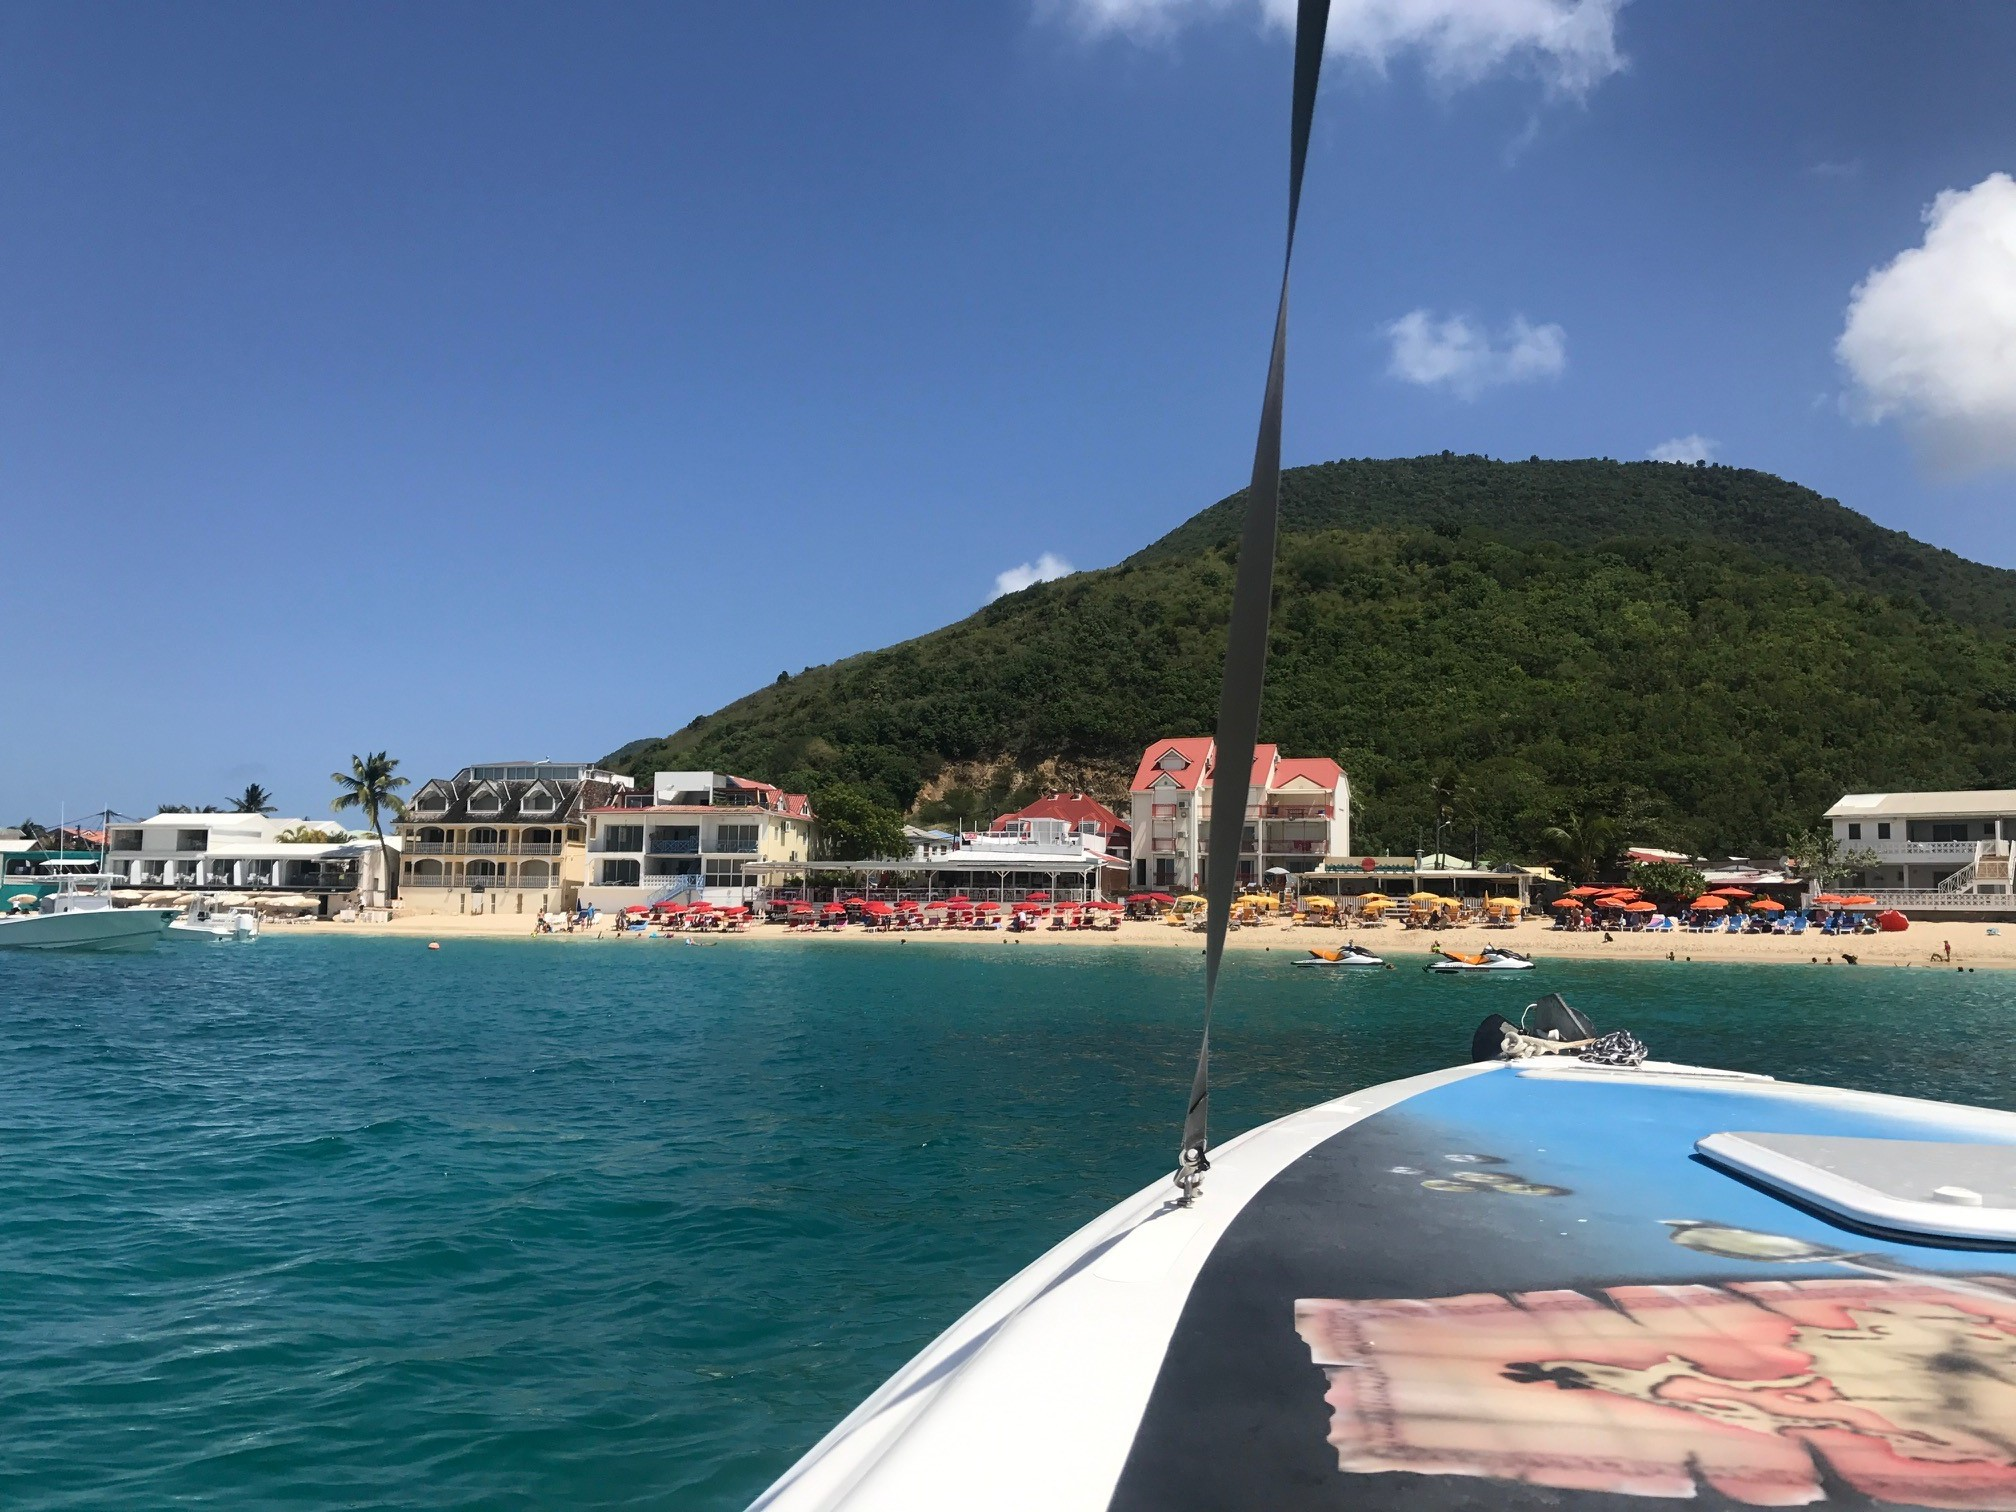 Snorkeling Party Boat Charter – Let The Fun Times Roll!